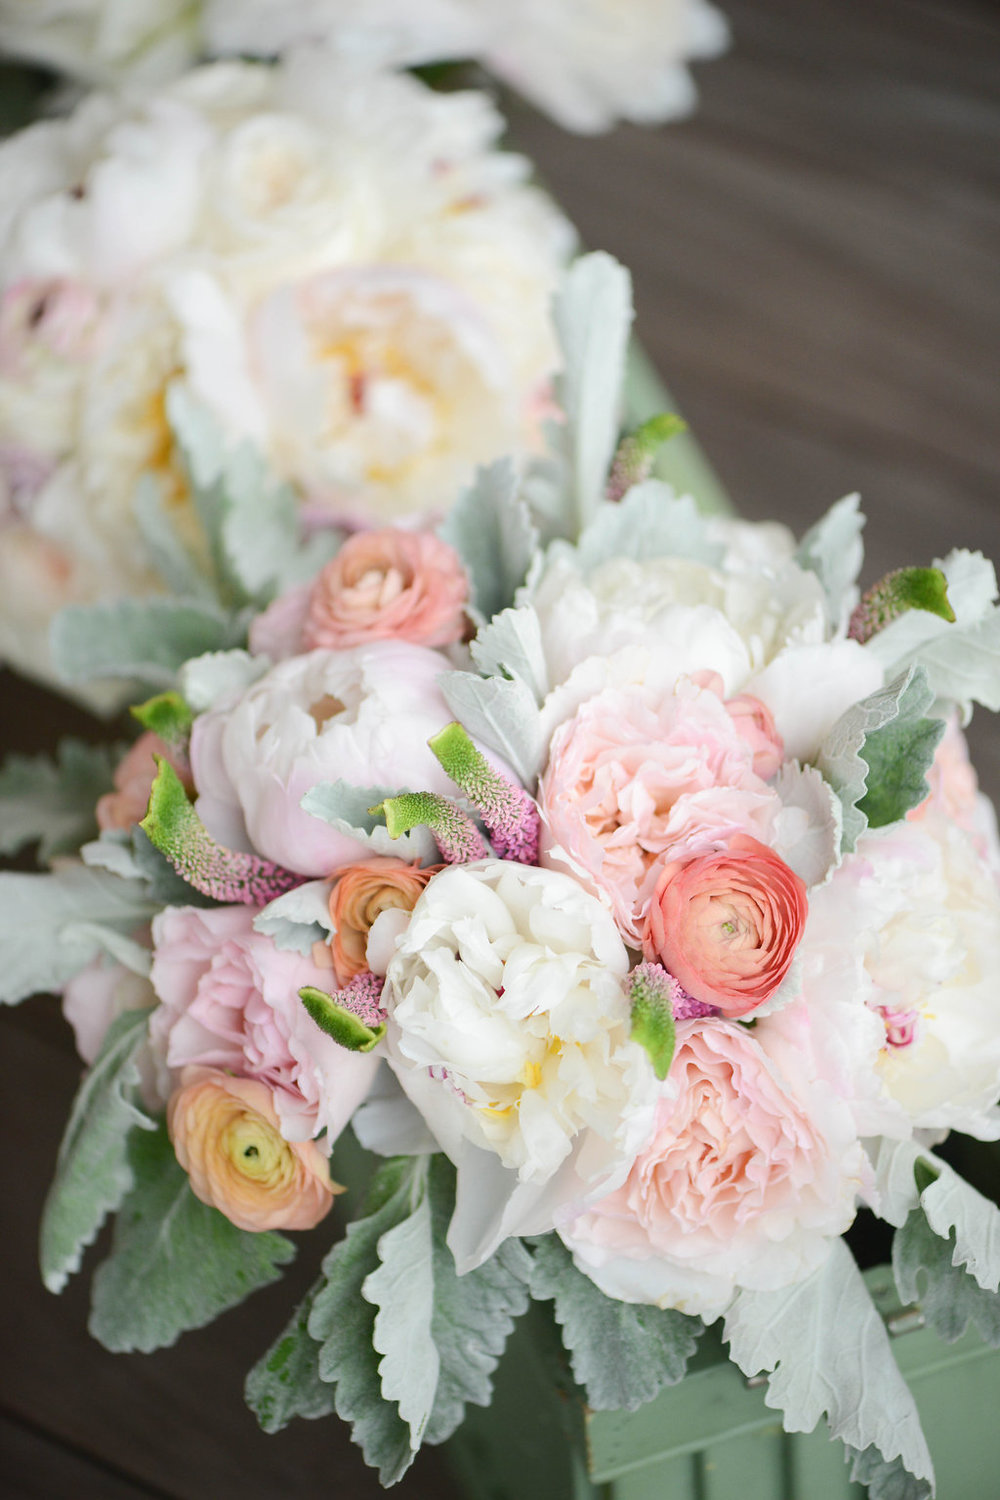 Pink peony + ranunculus bouquet at Seabrook Island Club wedding in Charleston, South Carolina by Lowcounty vendors Chelsea Paige Photography, Miele Events